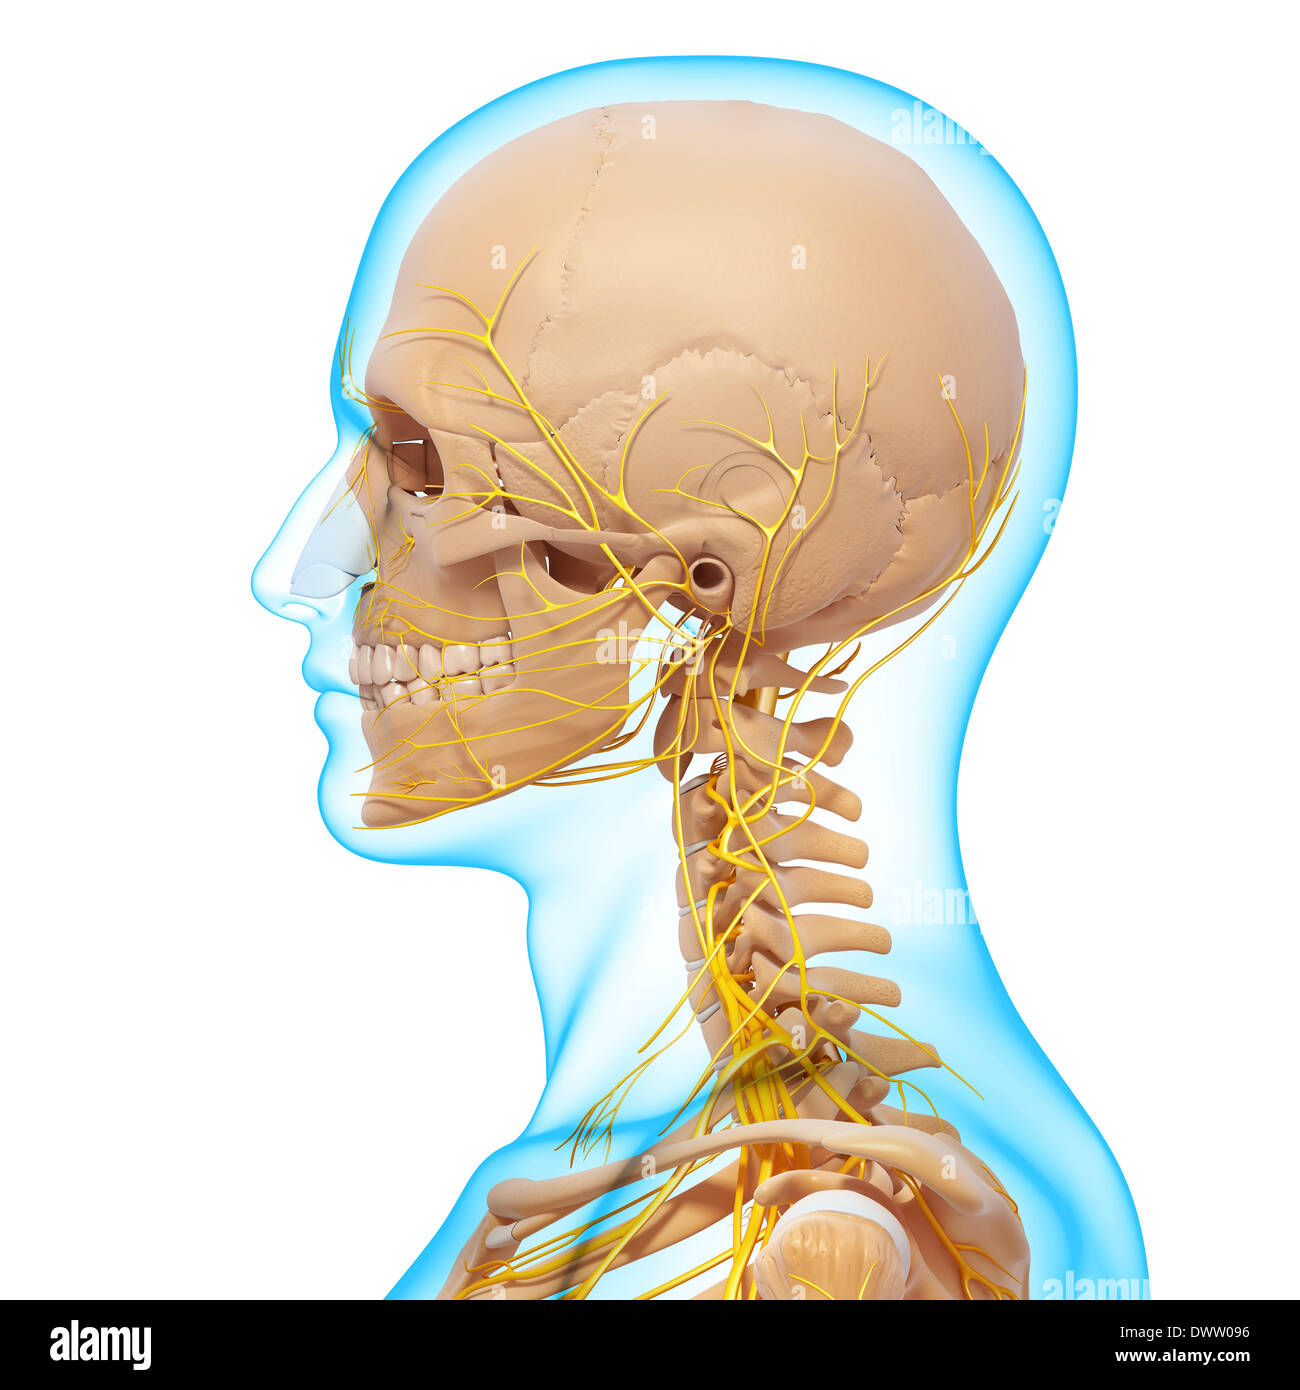 Peripheral nervous head neck drawing stock photos peripheral peripheral nervous system head neck drawing stock image ccuart Choice Image